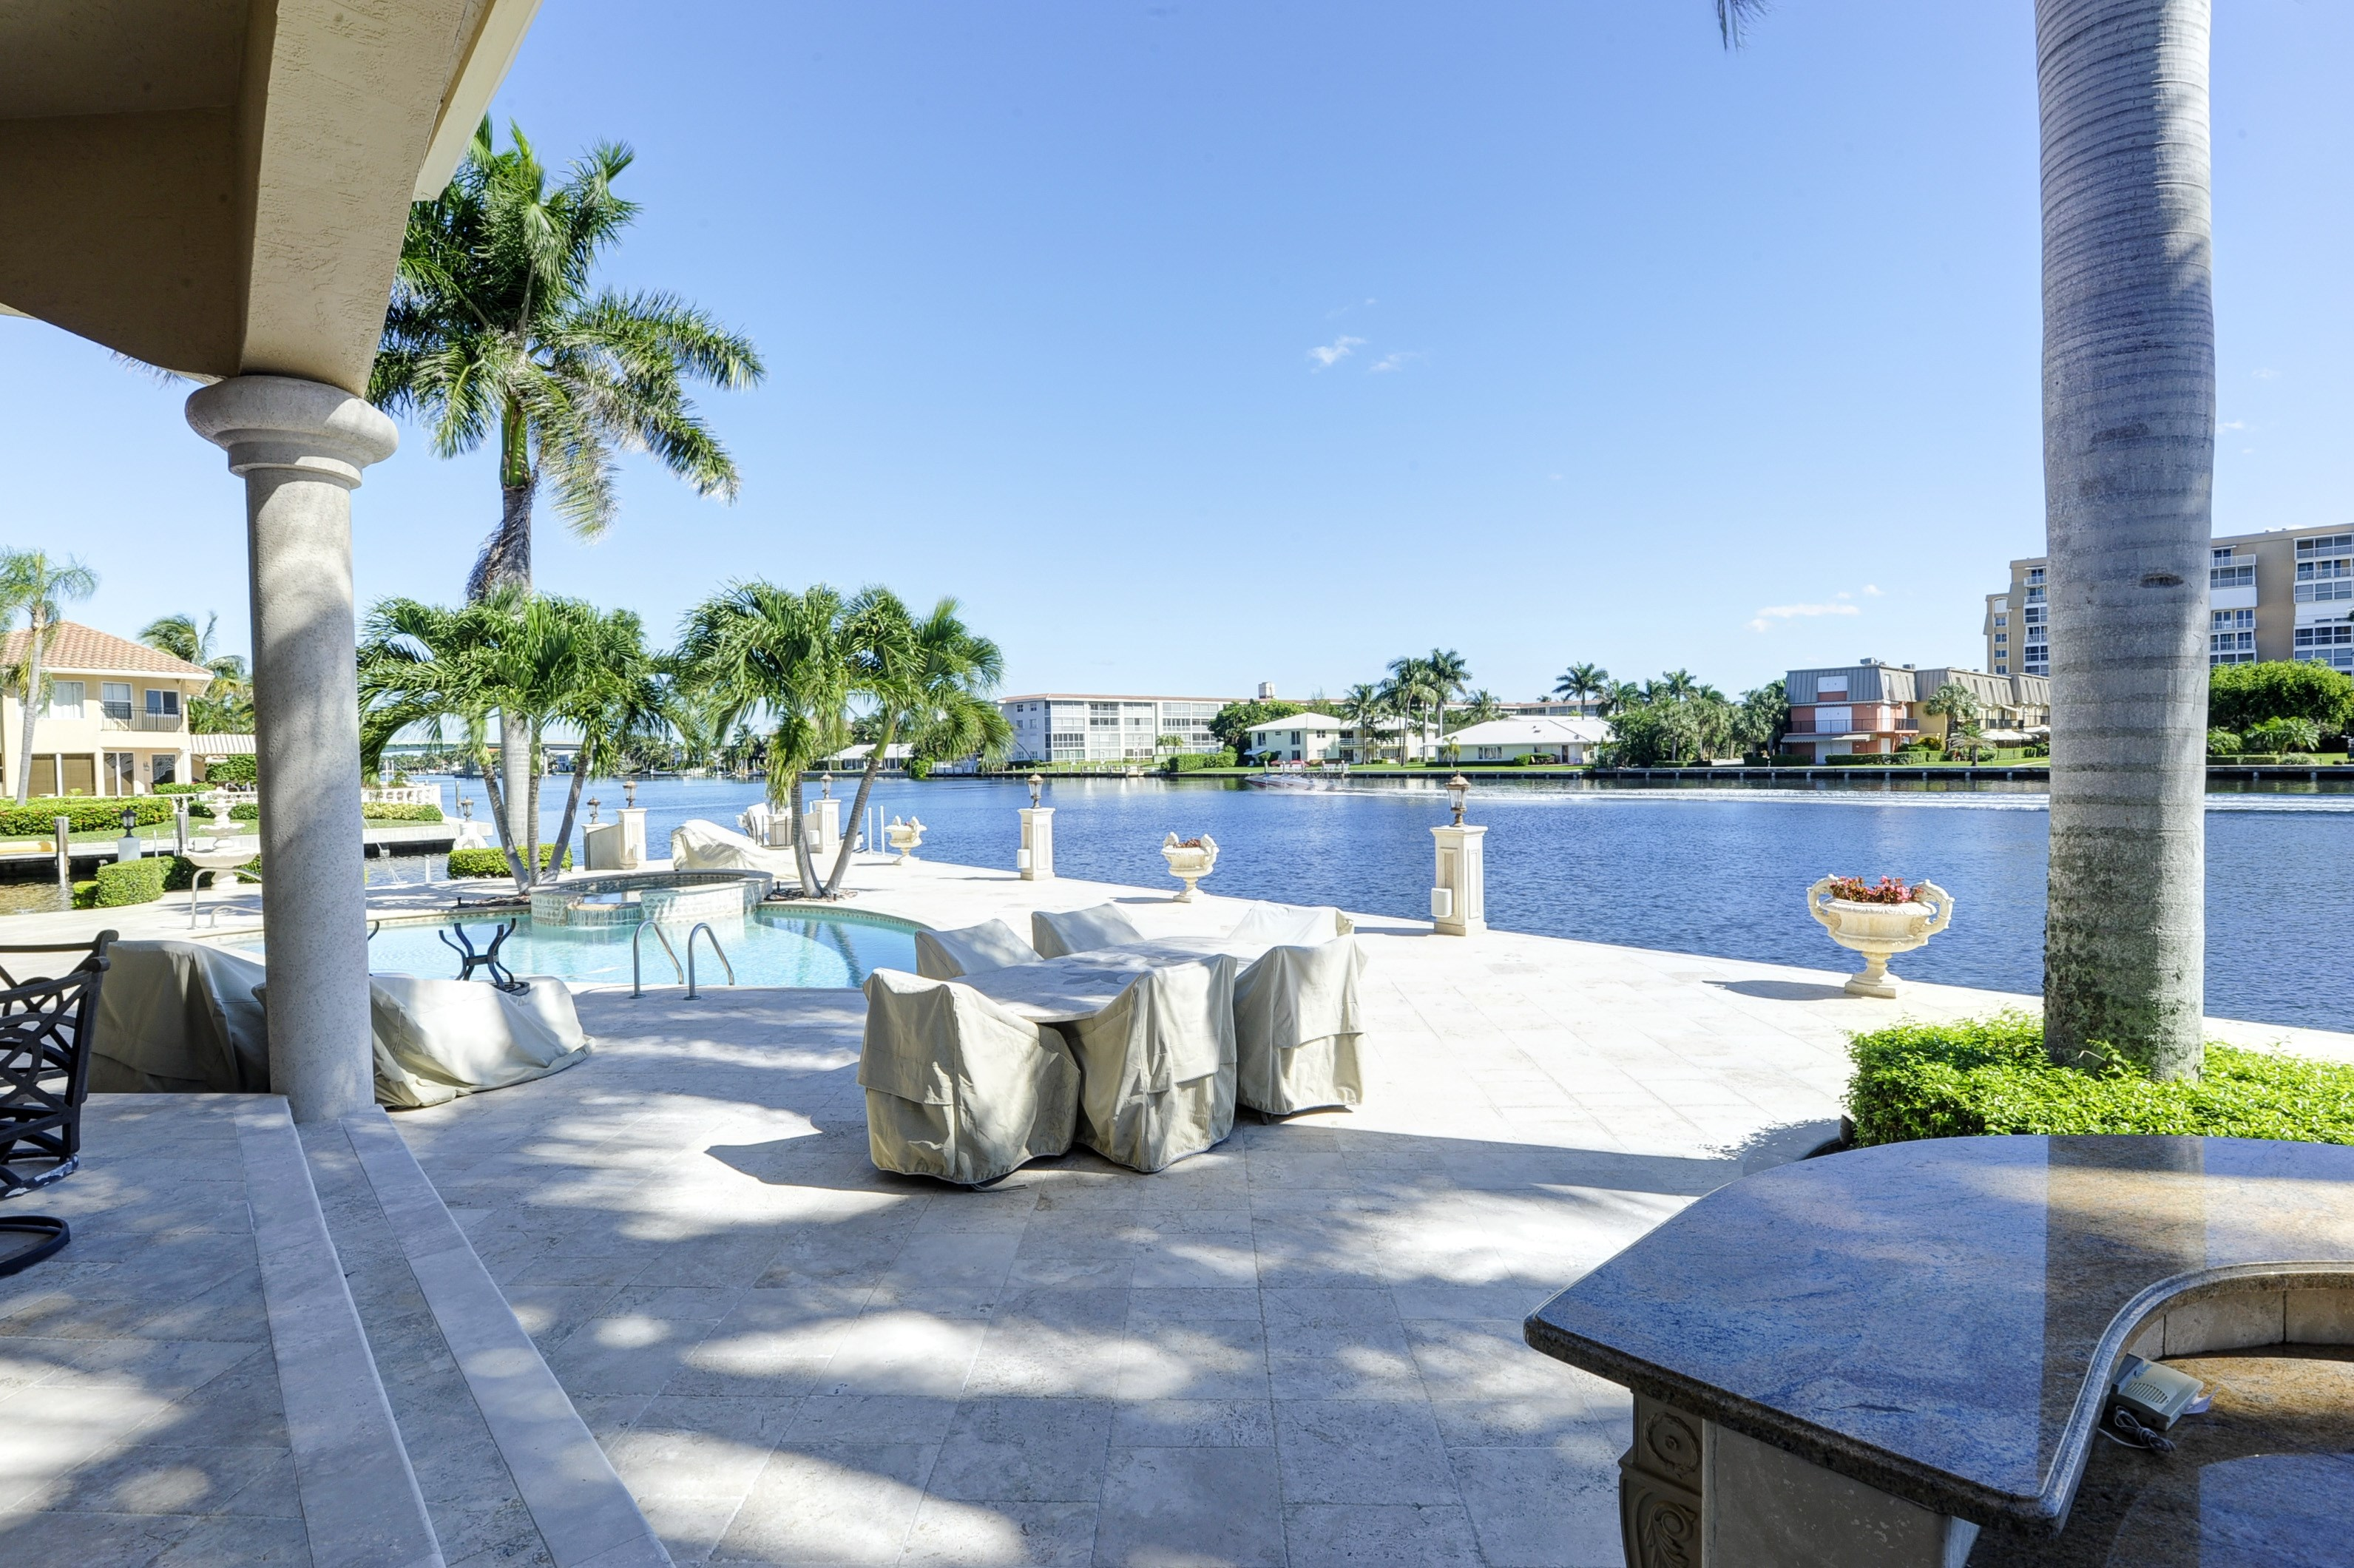 Tropic Isles Waterfront Delray Beach Fl